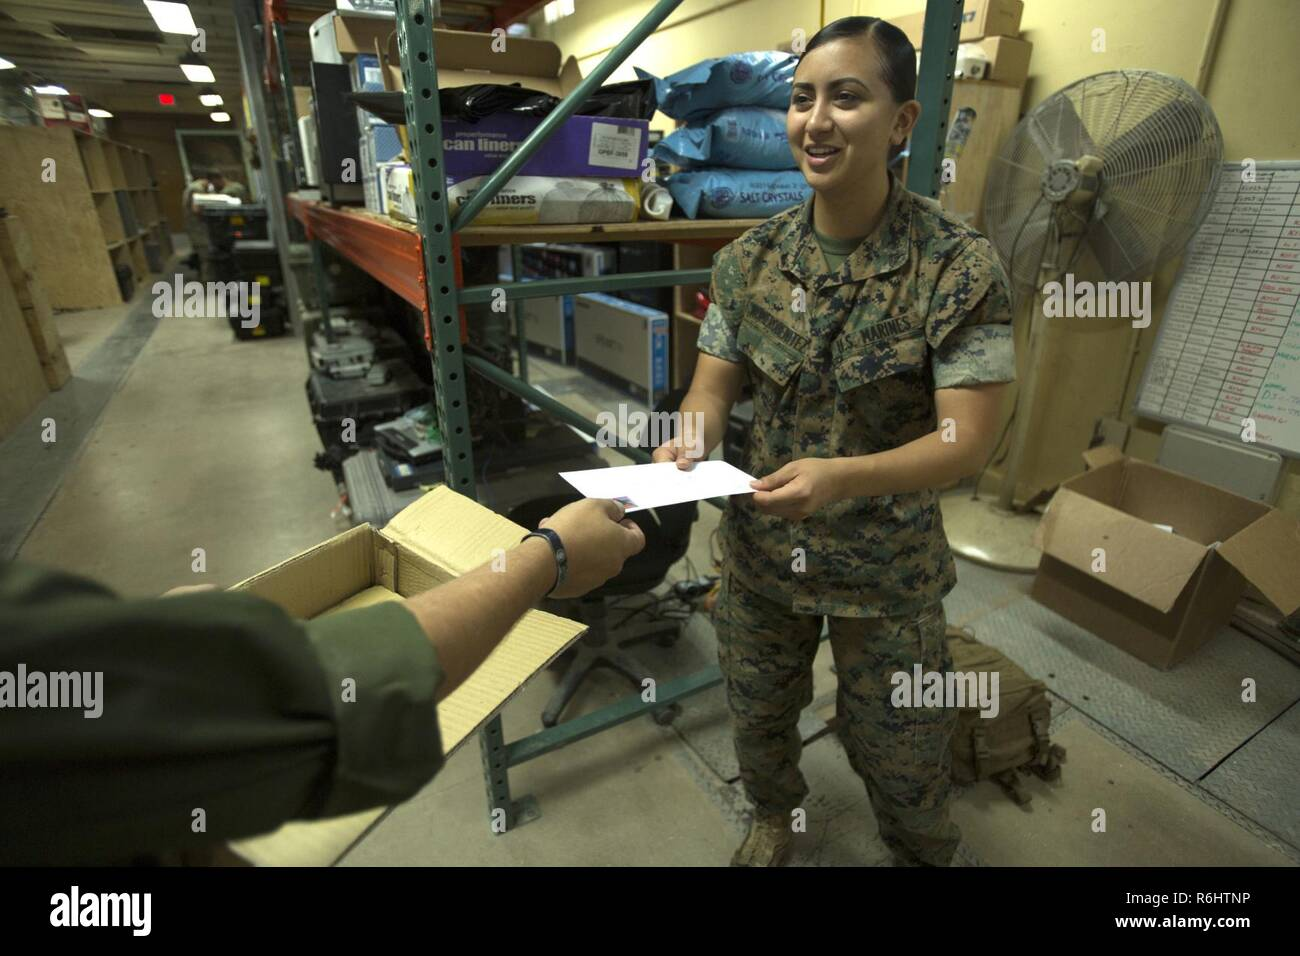 Sergeant Kyle J. Gorman, a satellite communications technician assigned to Special Purpose Marine Air-Ground Task Force-Crisis Response-Africa, delivers a hand-written letter to Cpl. Ivett Romerobenitez, an assistant wire chief with SPMAGTF-CR-AF, at Morón Air Base, Spain, May 19, 2017. The letters were written by third grade students from Freedom Elementary School in Brandenton, Fla. - Stock Image